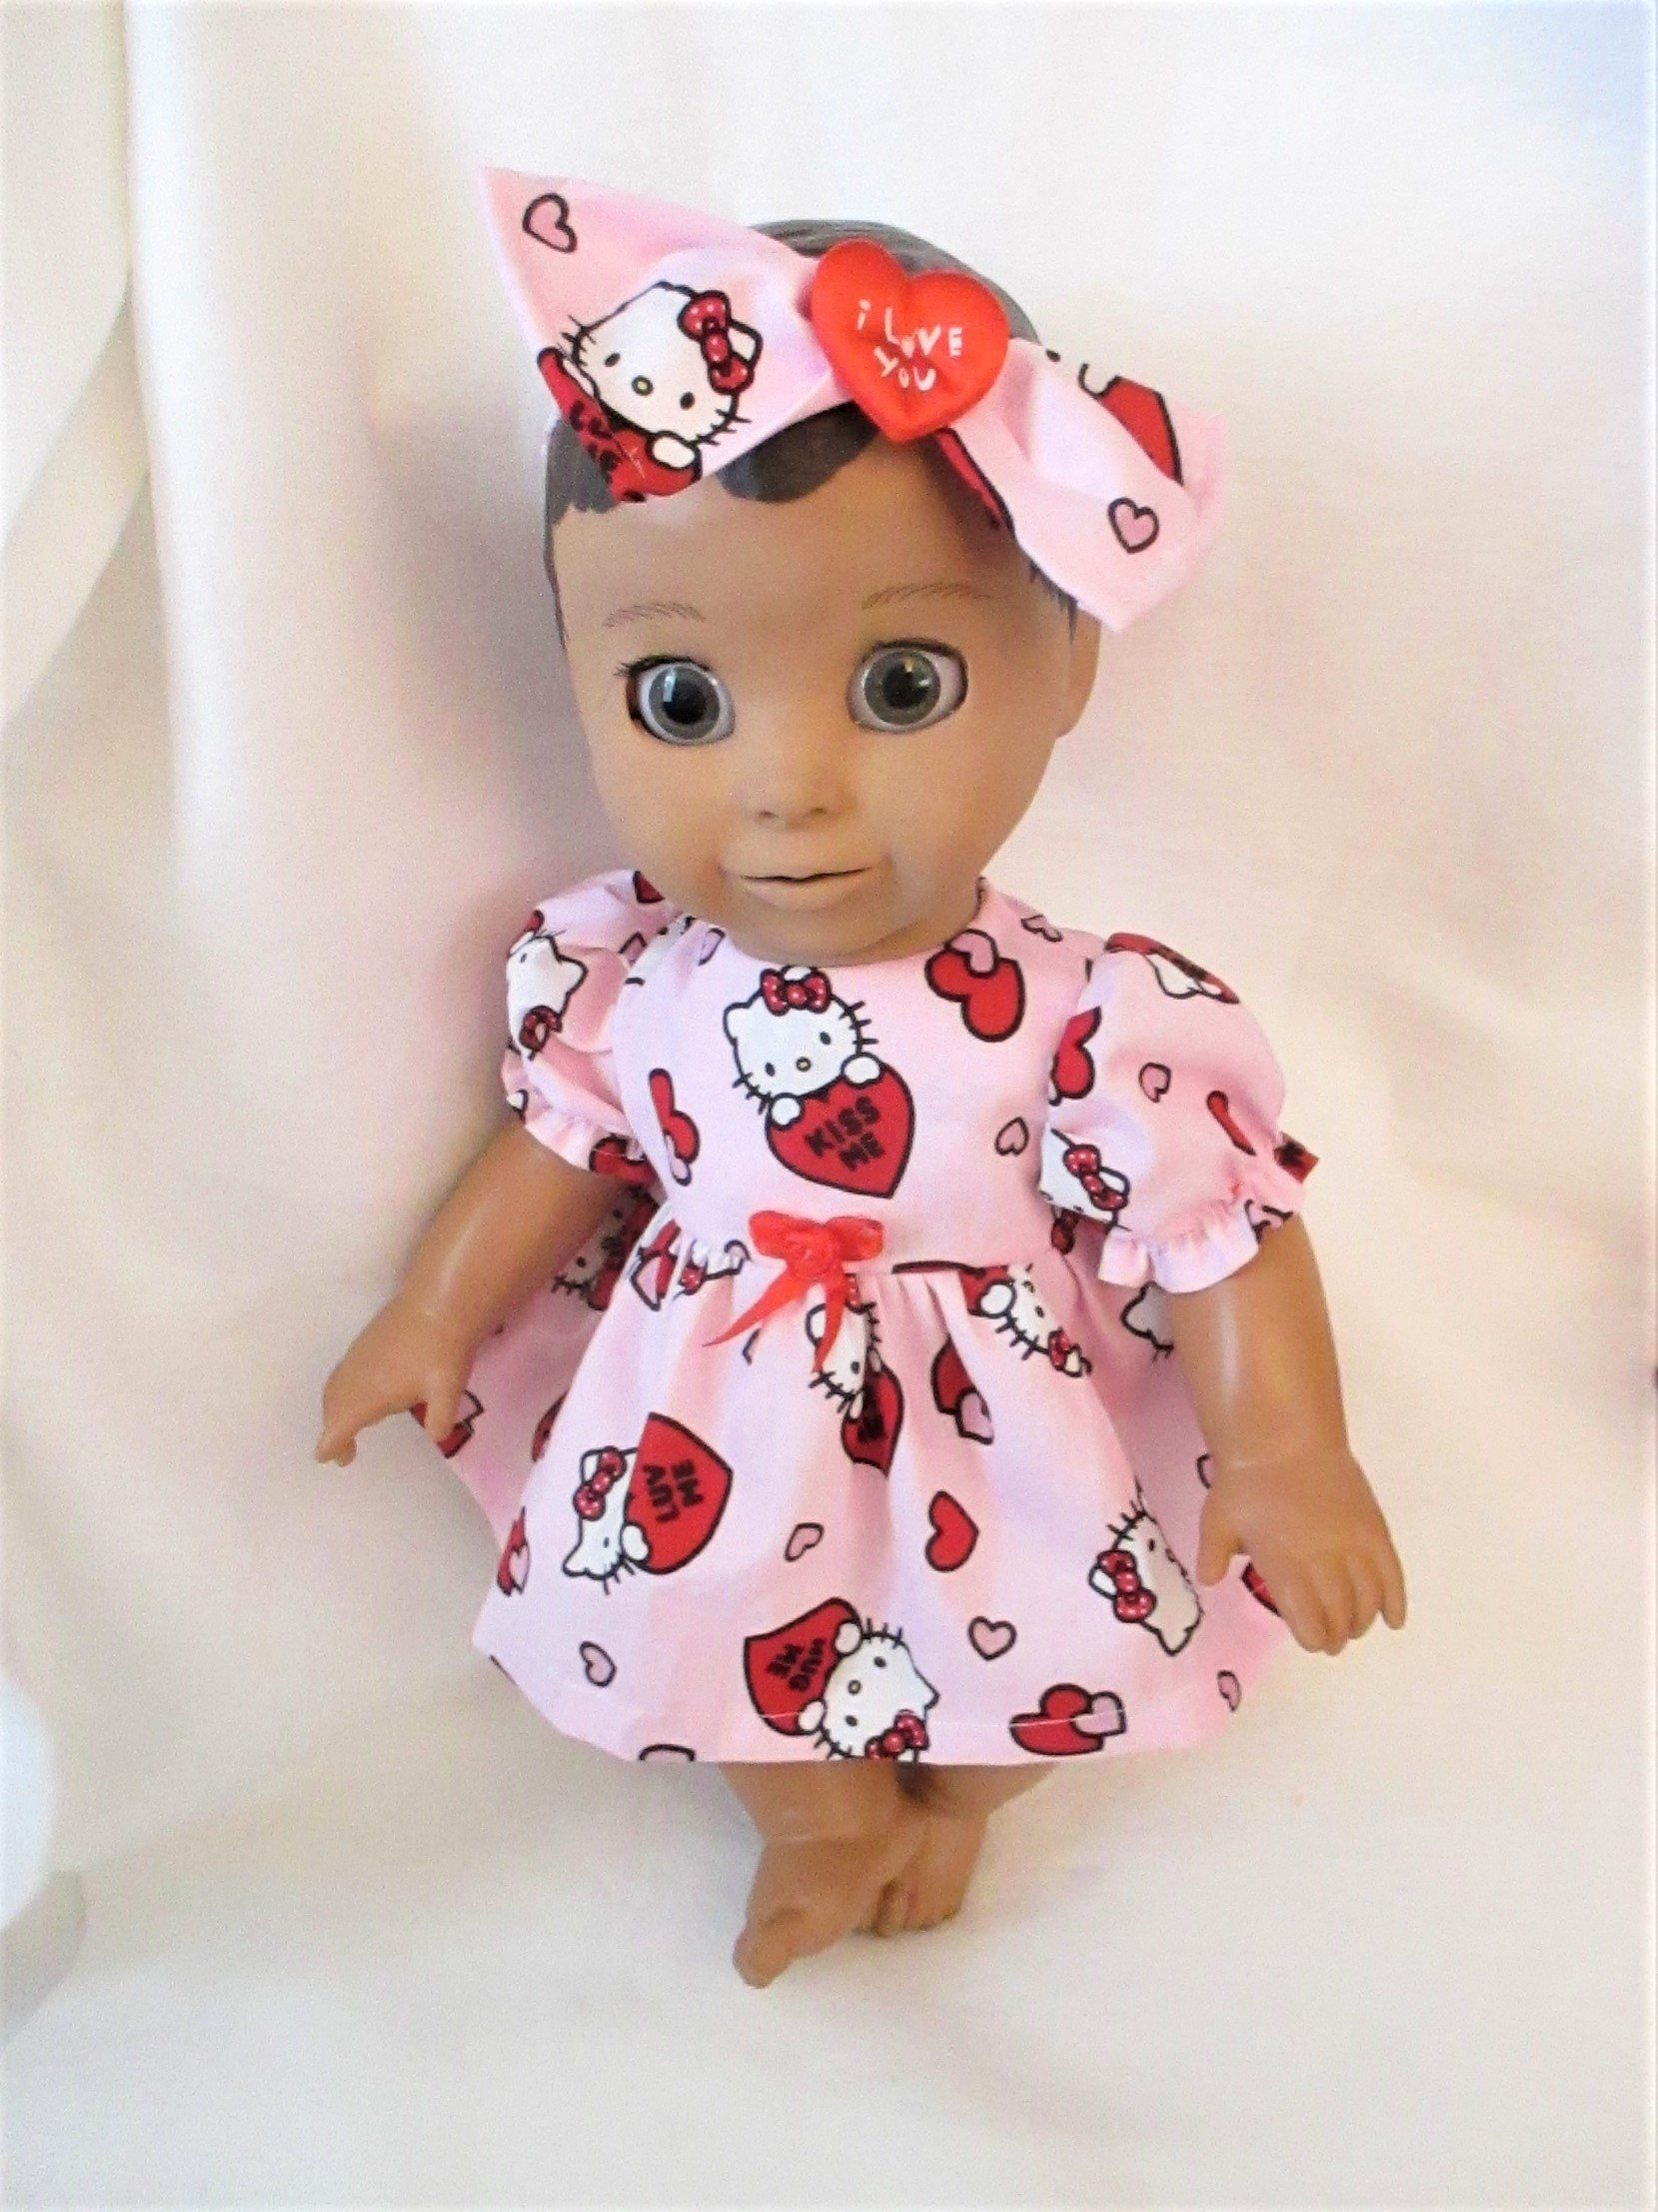 b0dfb90fd57c Luvabella Clothes Valentines Dress & Headband Pink Red hello Kitty Puff  Sleeves Full Skirt Hearts by Giftsbygammy on Etsy